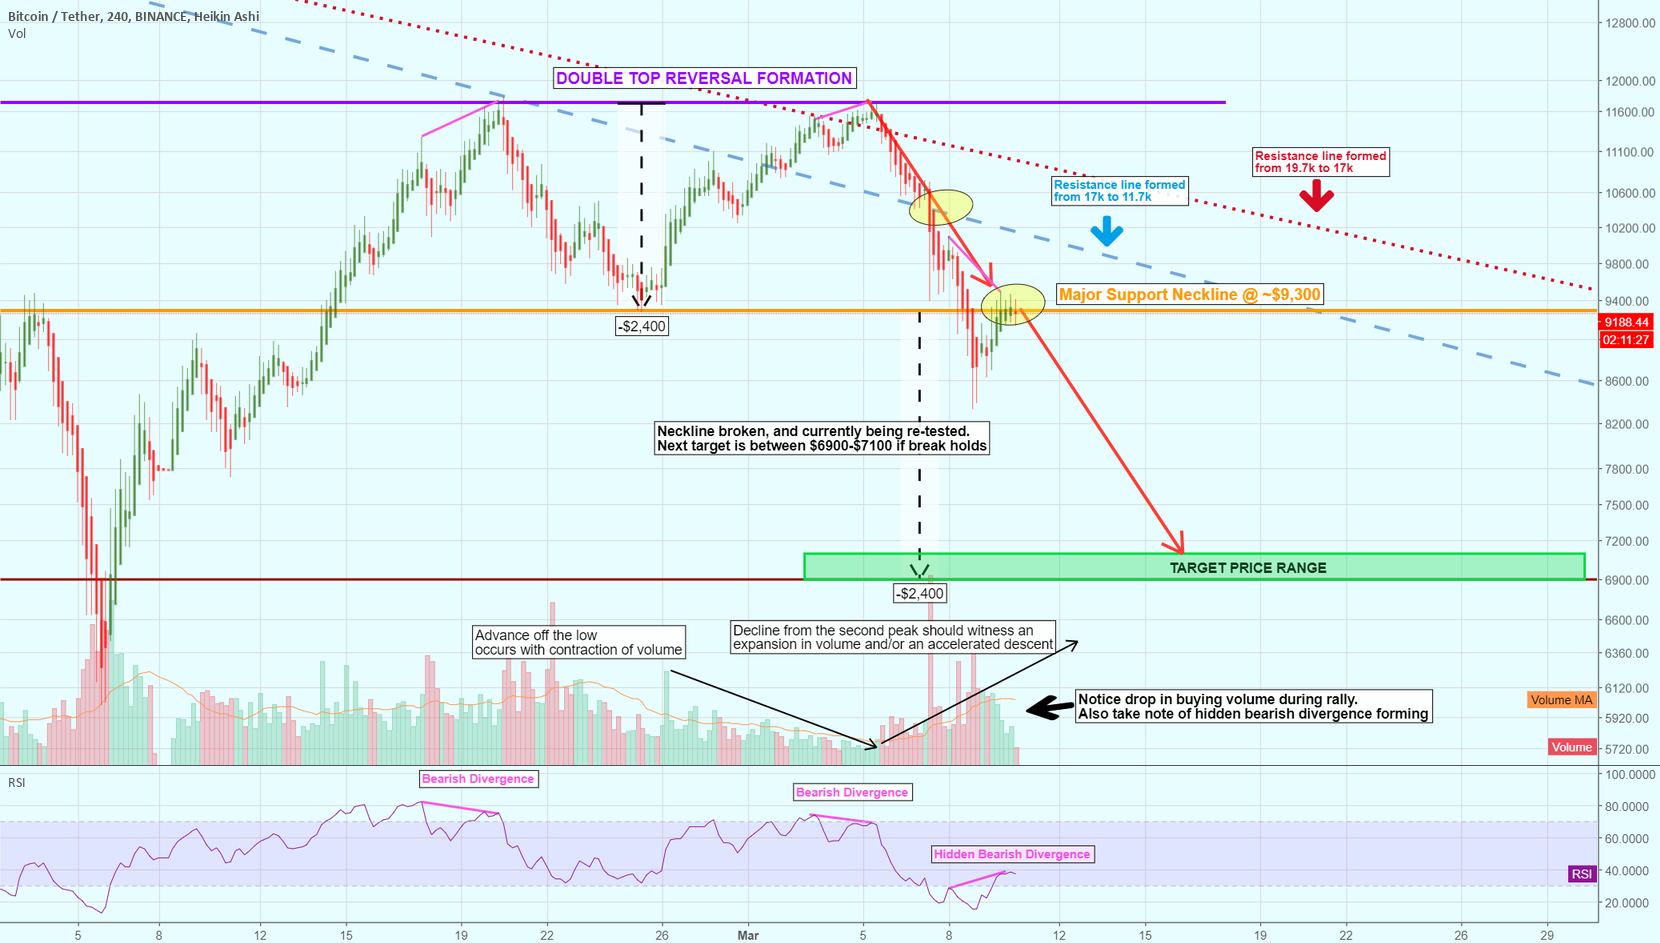 Double Top Reversal continues after Neckline Re-test